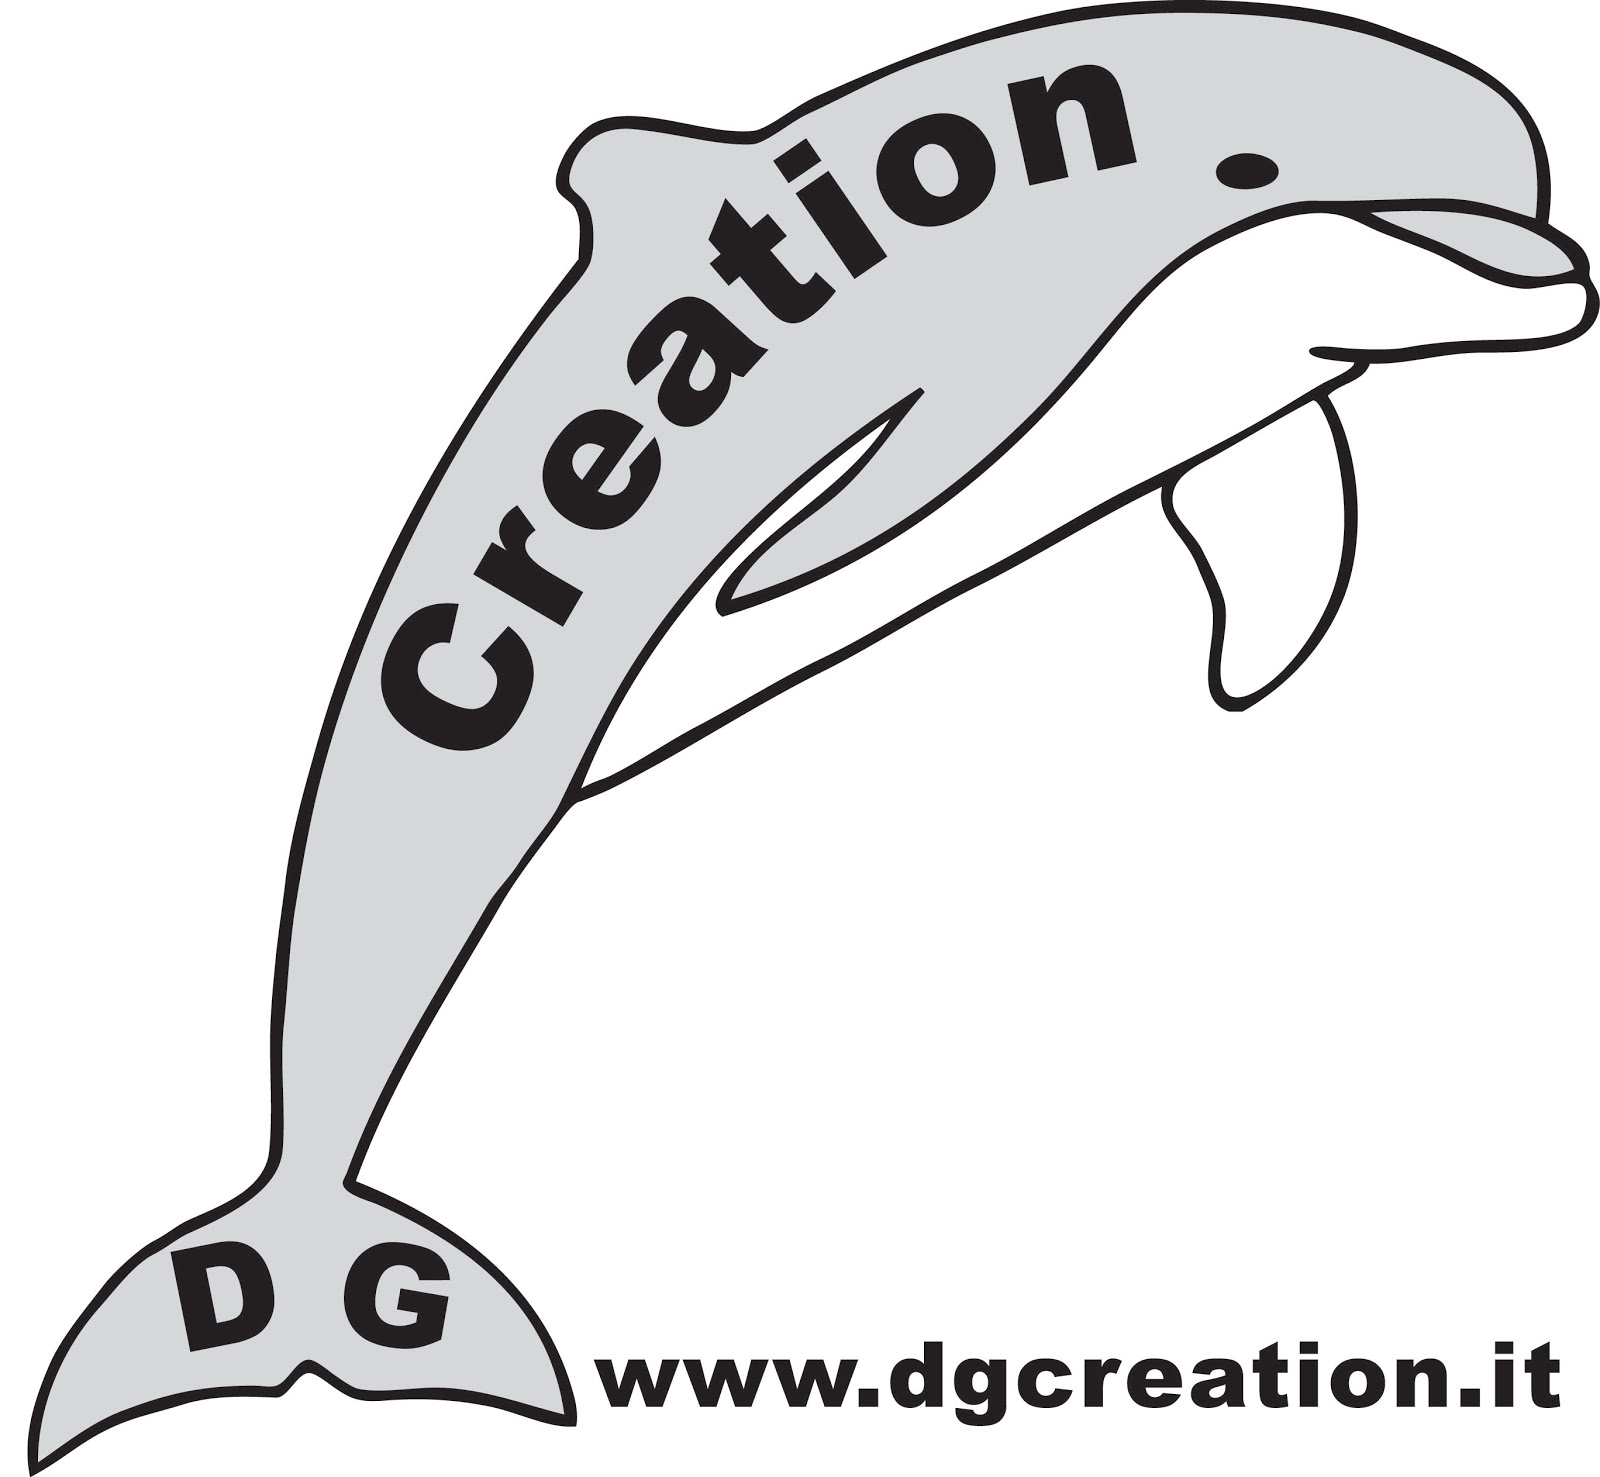 DG creation